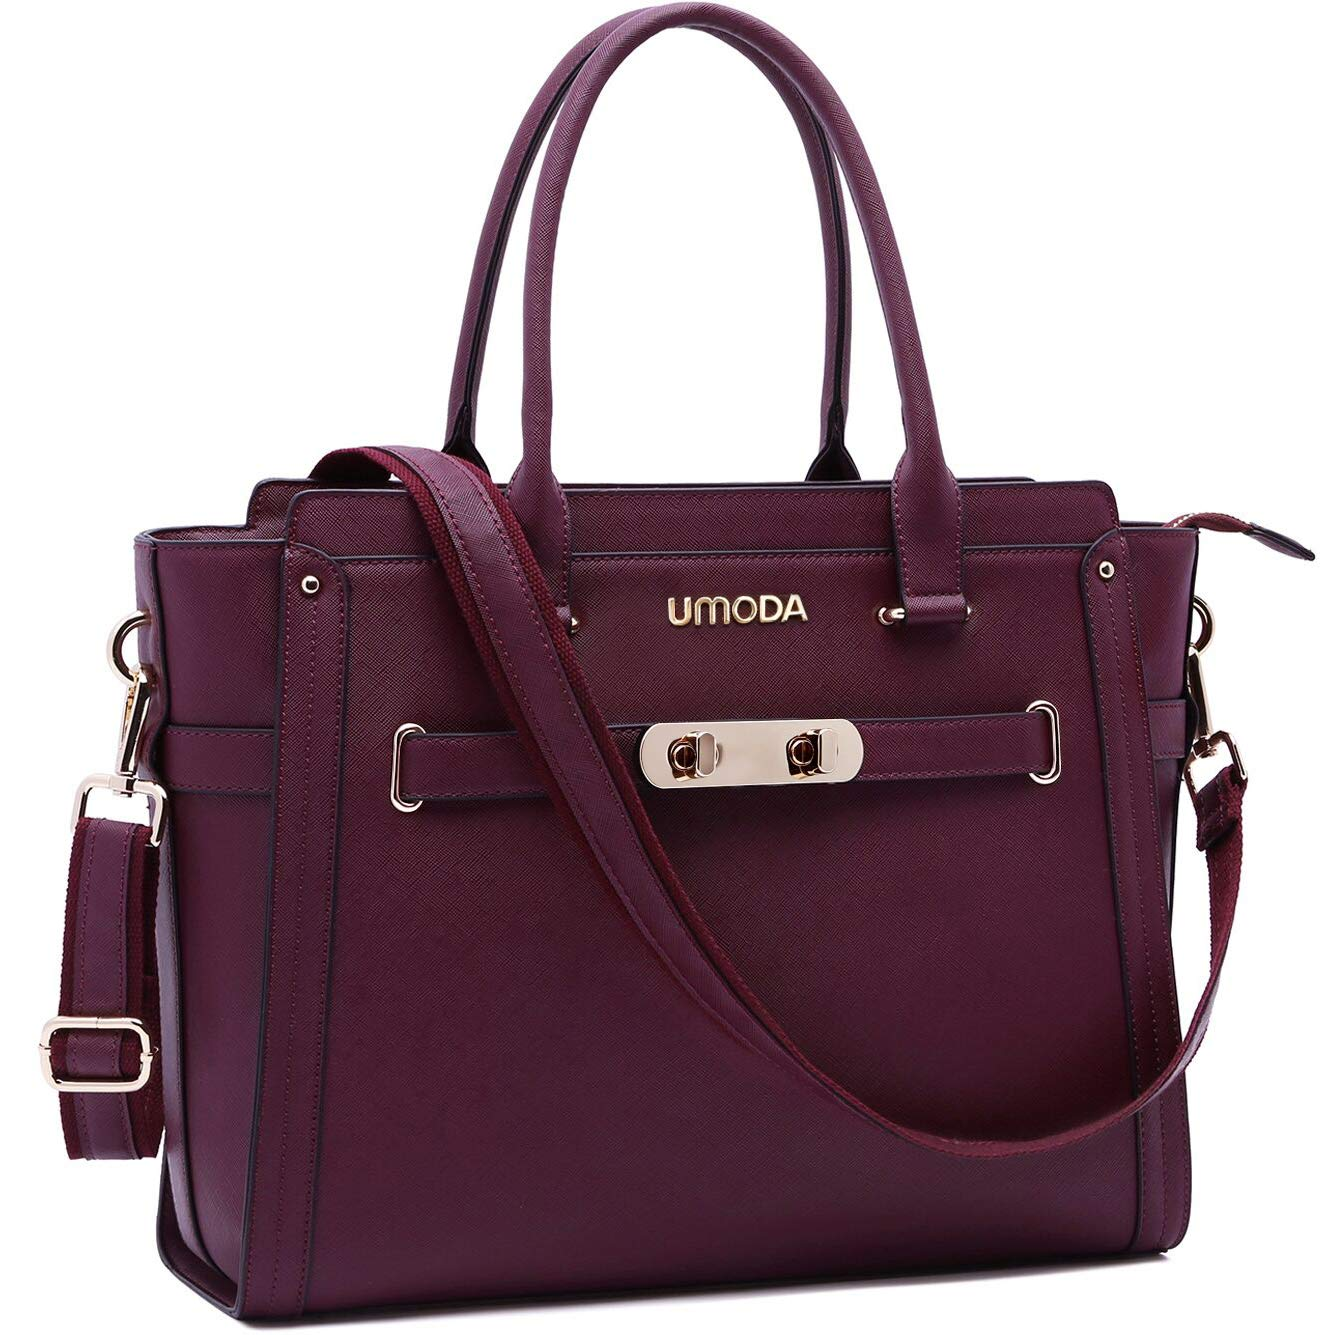 Laptop Bag for Women,15.6 Inch Multi Pocket Padded Laptop Tote Bag,Padlock Design Computer Bags for Women,Burgundy